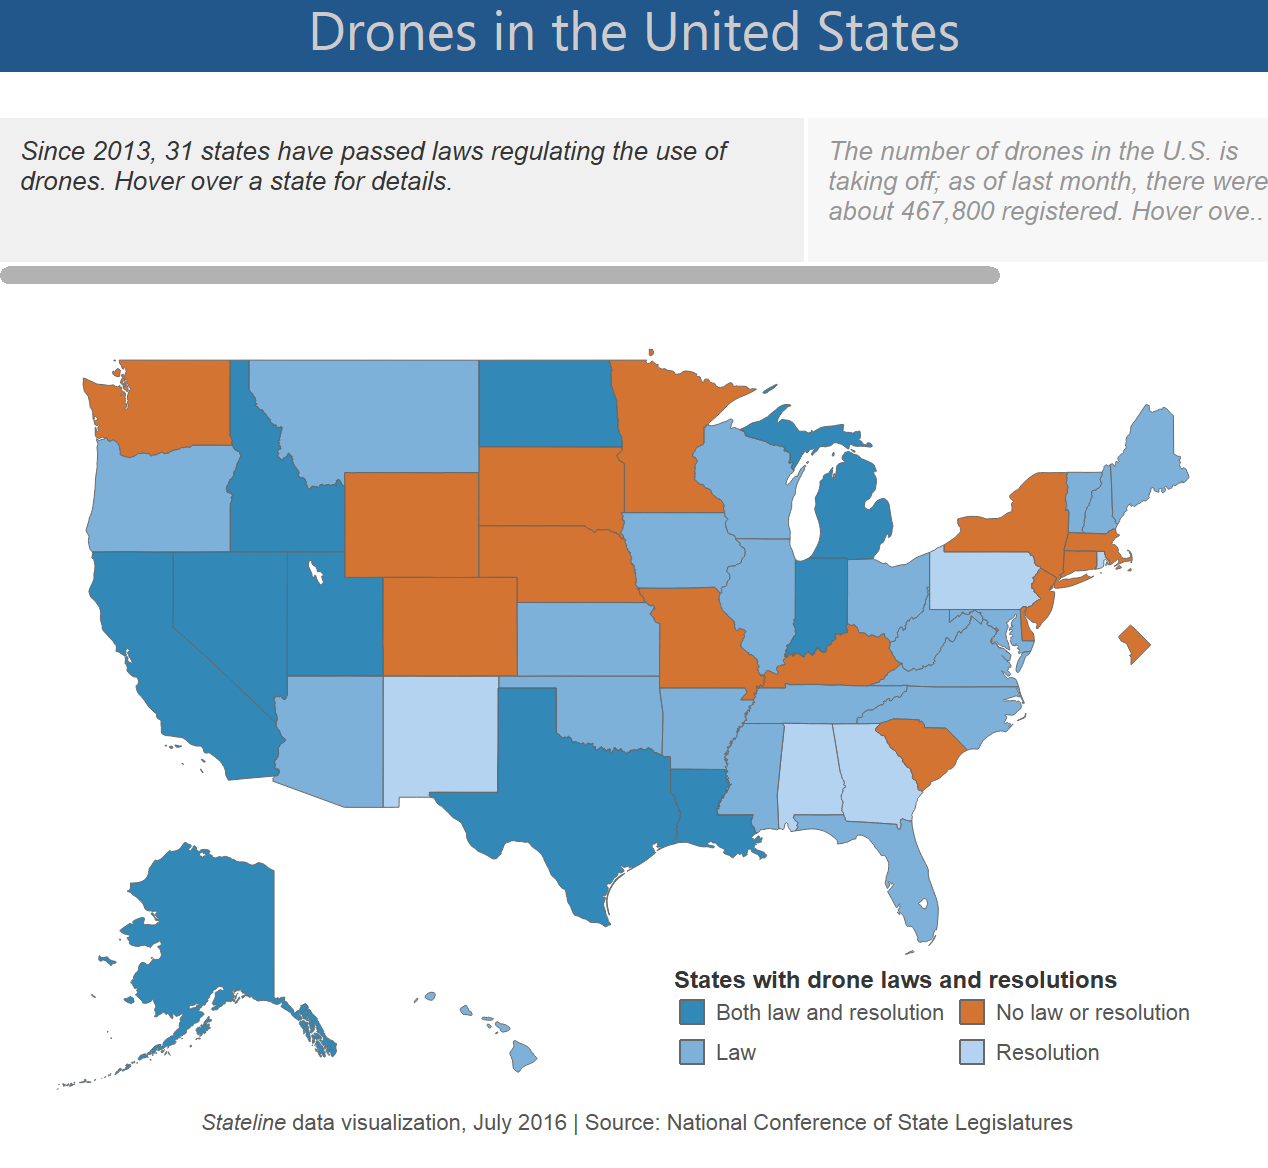 Estados USA con regulación sobre drones